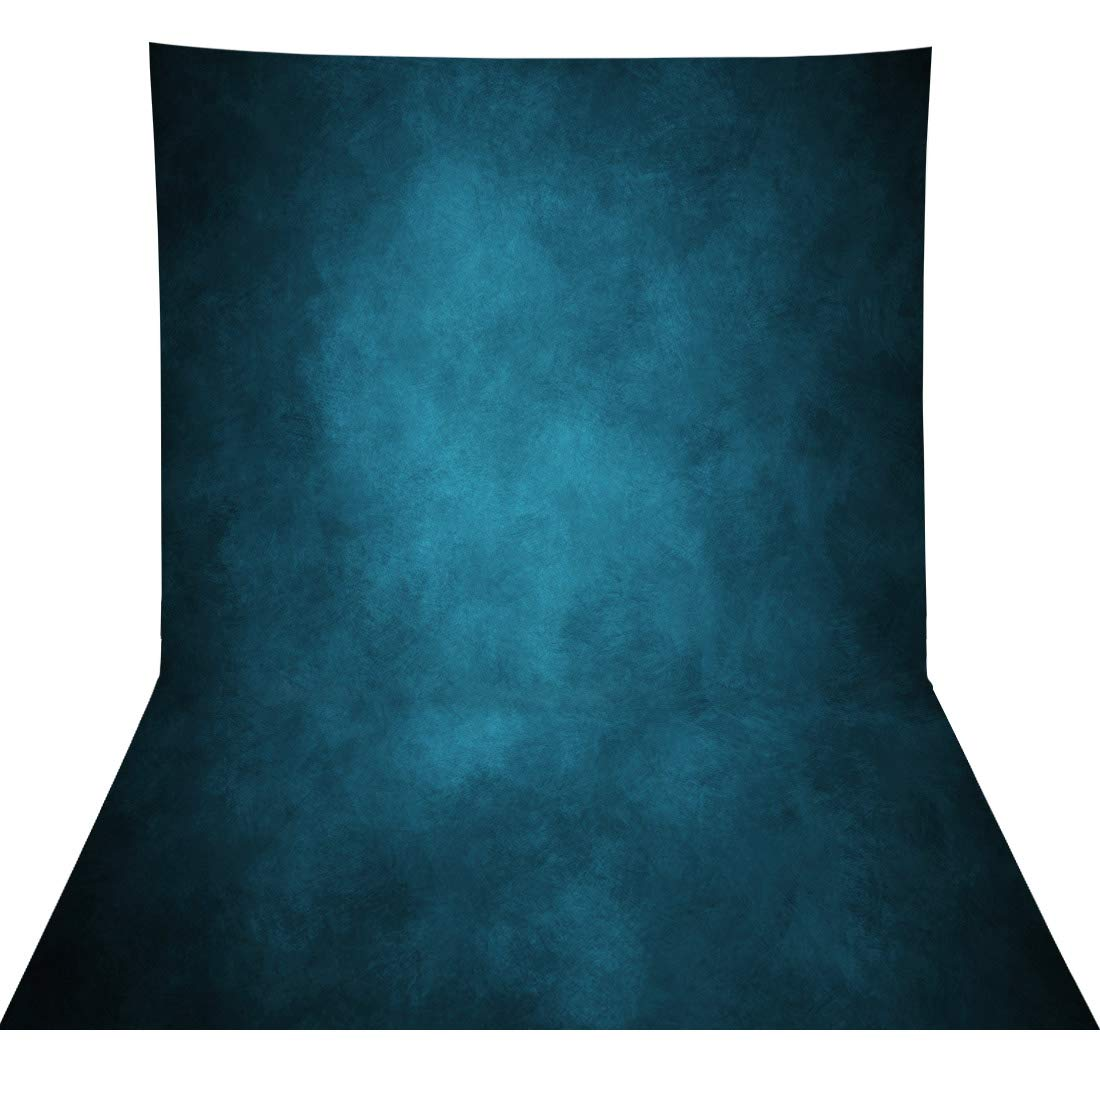 Allenjoy 5x7ft Fabric Old Master Portraits Pictures Shoot Photography Backdrop Supplies Vintage Elegant Dark Blue Abstract Texture Background Studio Professional Photographers Photoshoot Props Favors